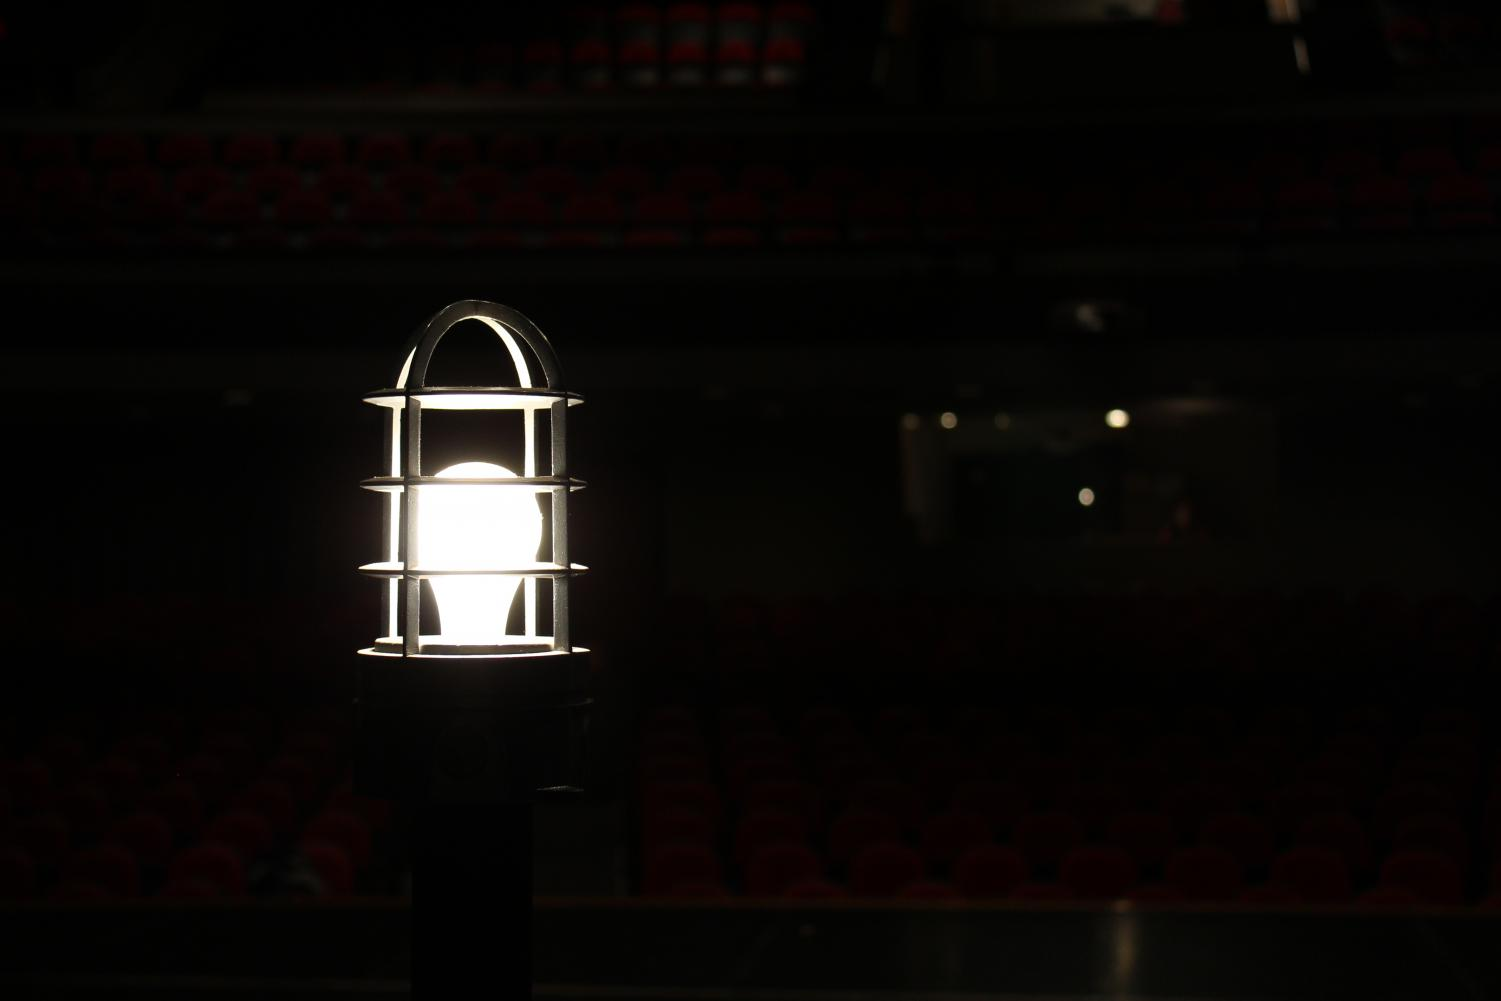 This light was turned on from 8 a.m. March 22nd until 8 a.m. March 23rd at Lincoln High's annual Theatre-A-Thon. This light symbolizes being on stage and in the theatre for 24 hours straight, which is the goal of Theatre-A-Thon. Photo by Emily Price